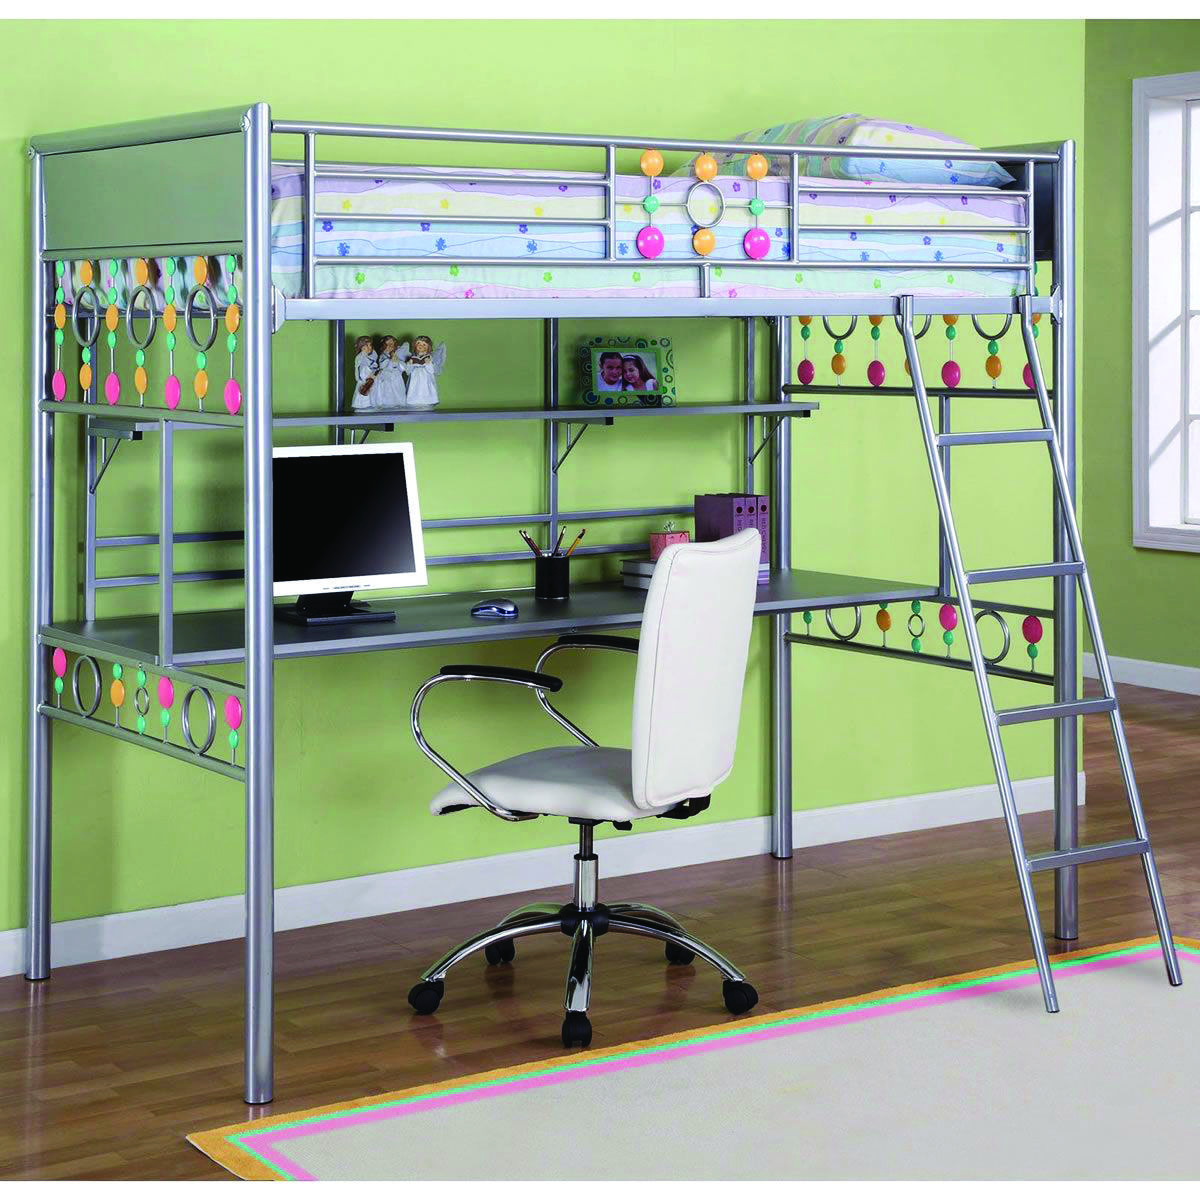 8 Loft Bedroom Ideas For Your Tiny Bed Room Homes Tre Build A Loft Bed Bunk Bed With Desk Bunk Beds With Stairs Bunk bed with desk under